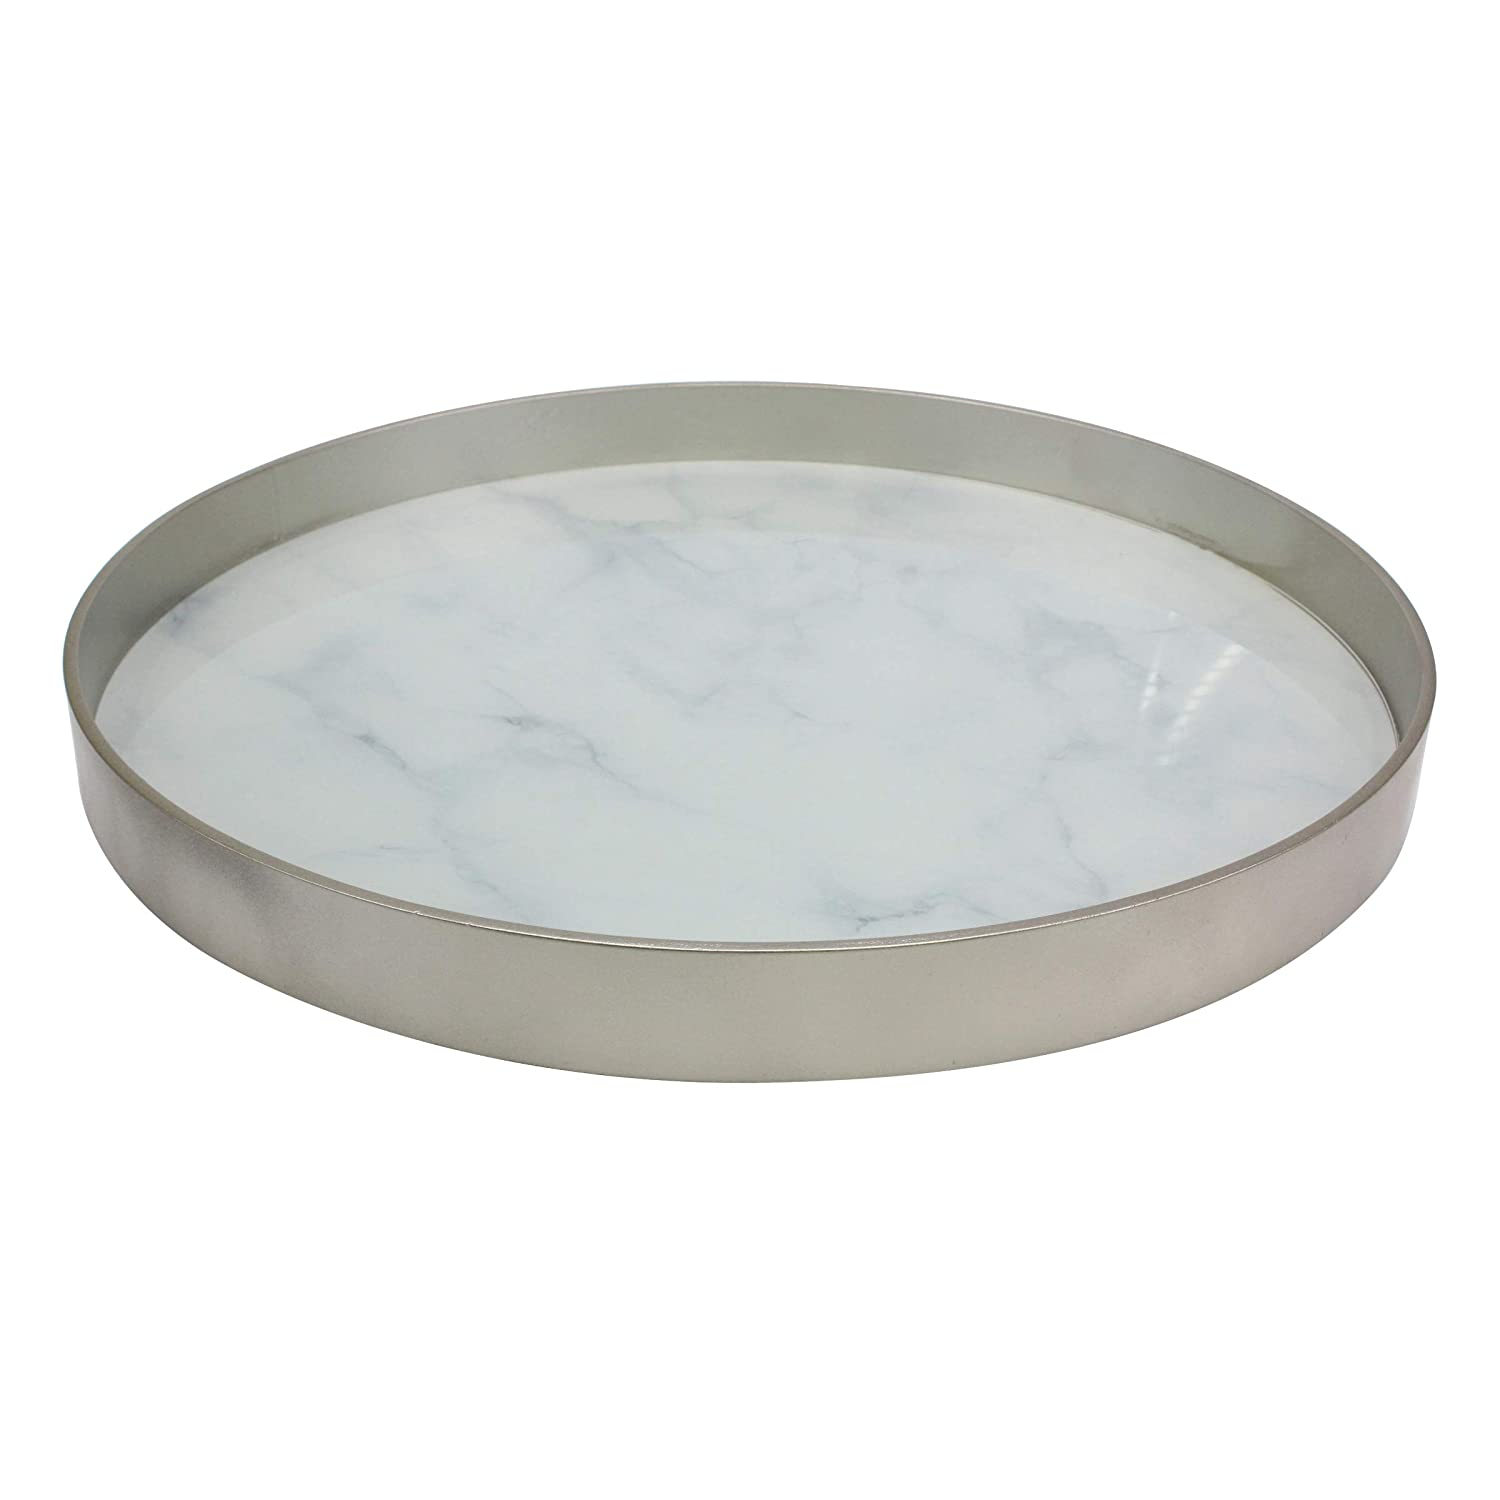 CKK Industrial LTD Stonebriar Round Silver Wood and White Marble Glass Serving Tray, Decorative Centerpiece for Dining Table or Coffee Table